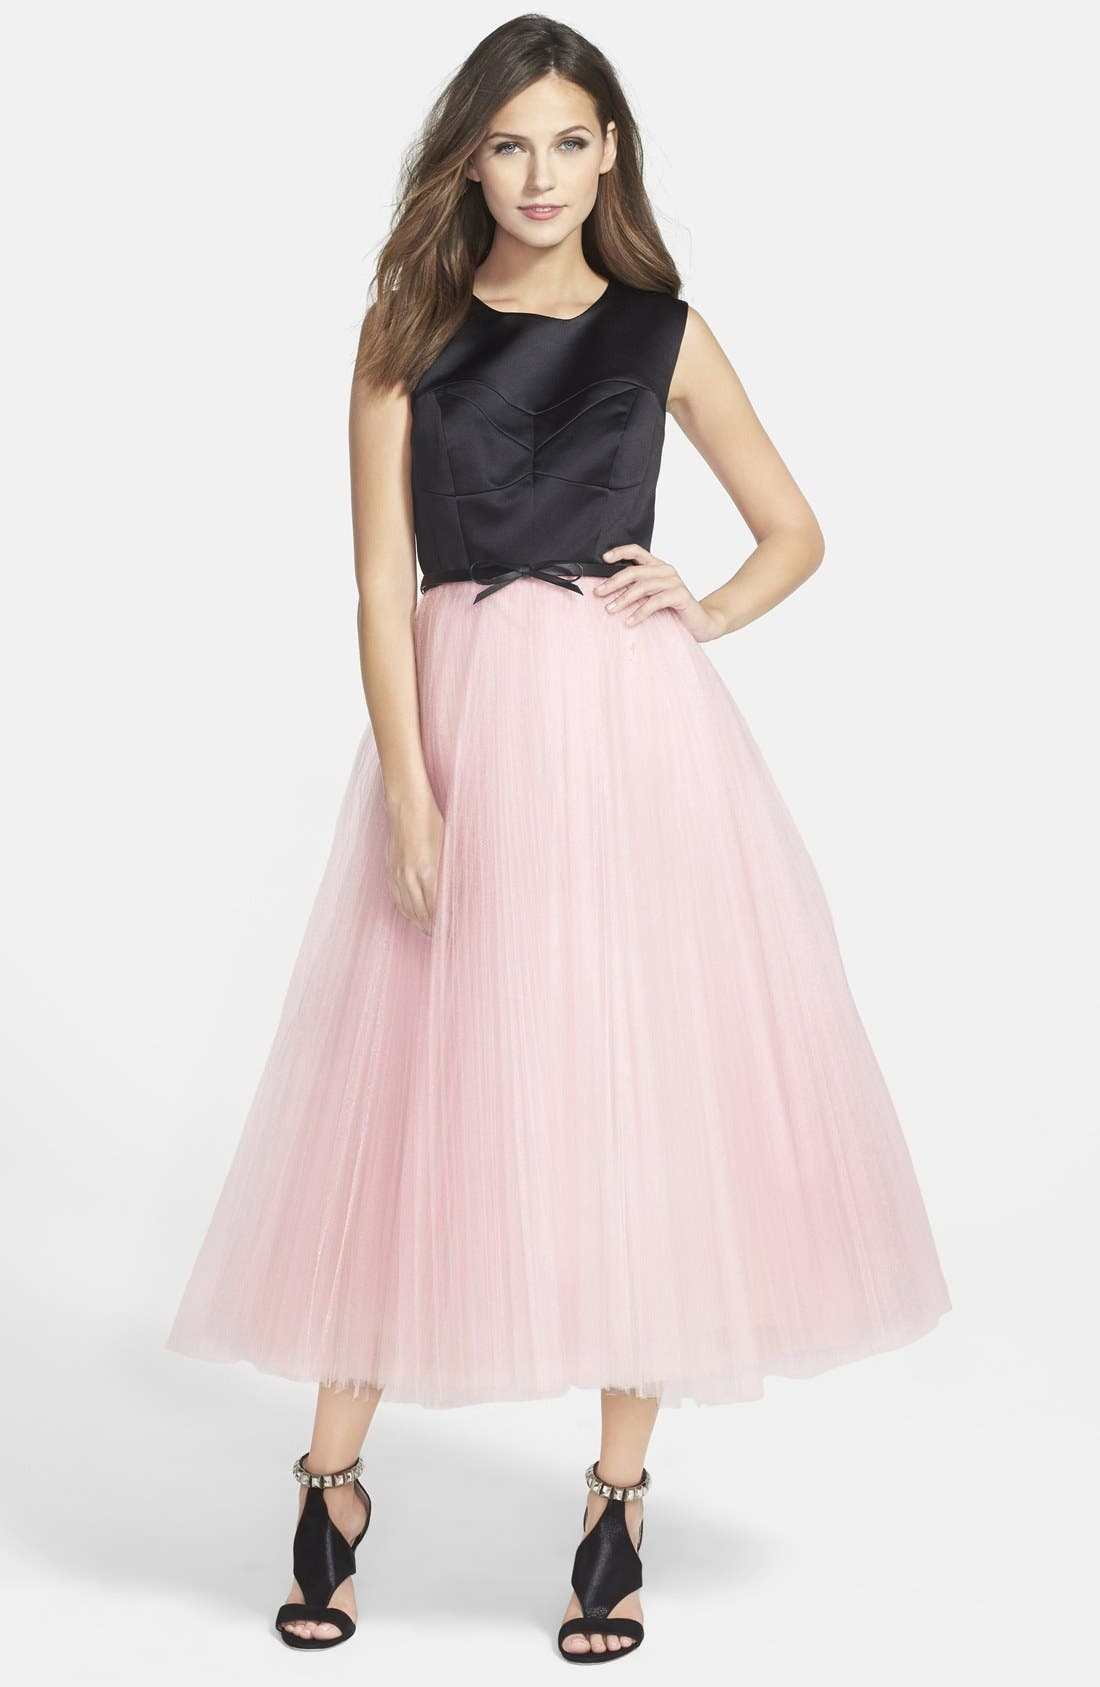 Alternate Image 1 Selected - Milly Tulle Skirt Fit & Flare Midi Dress